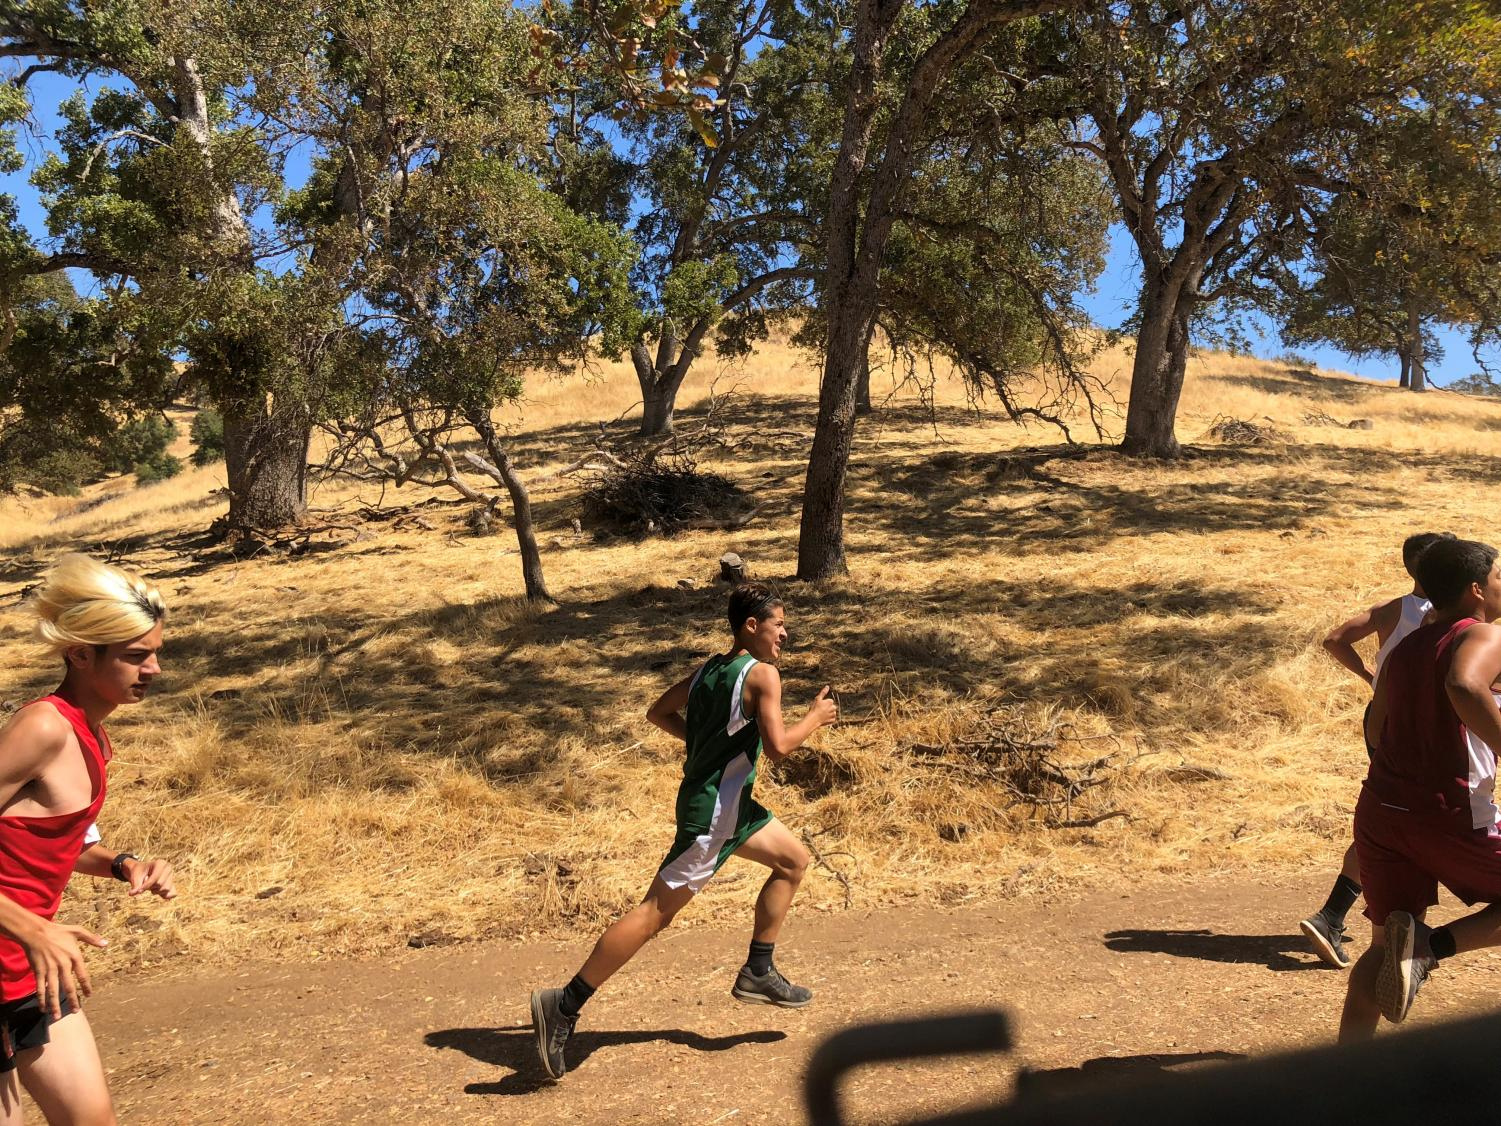 Frosh-Soph boy Jack Cornwell on the Frogtown course.